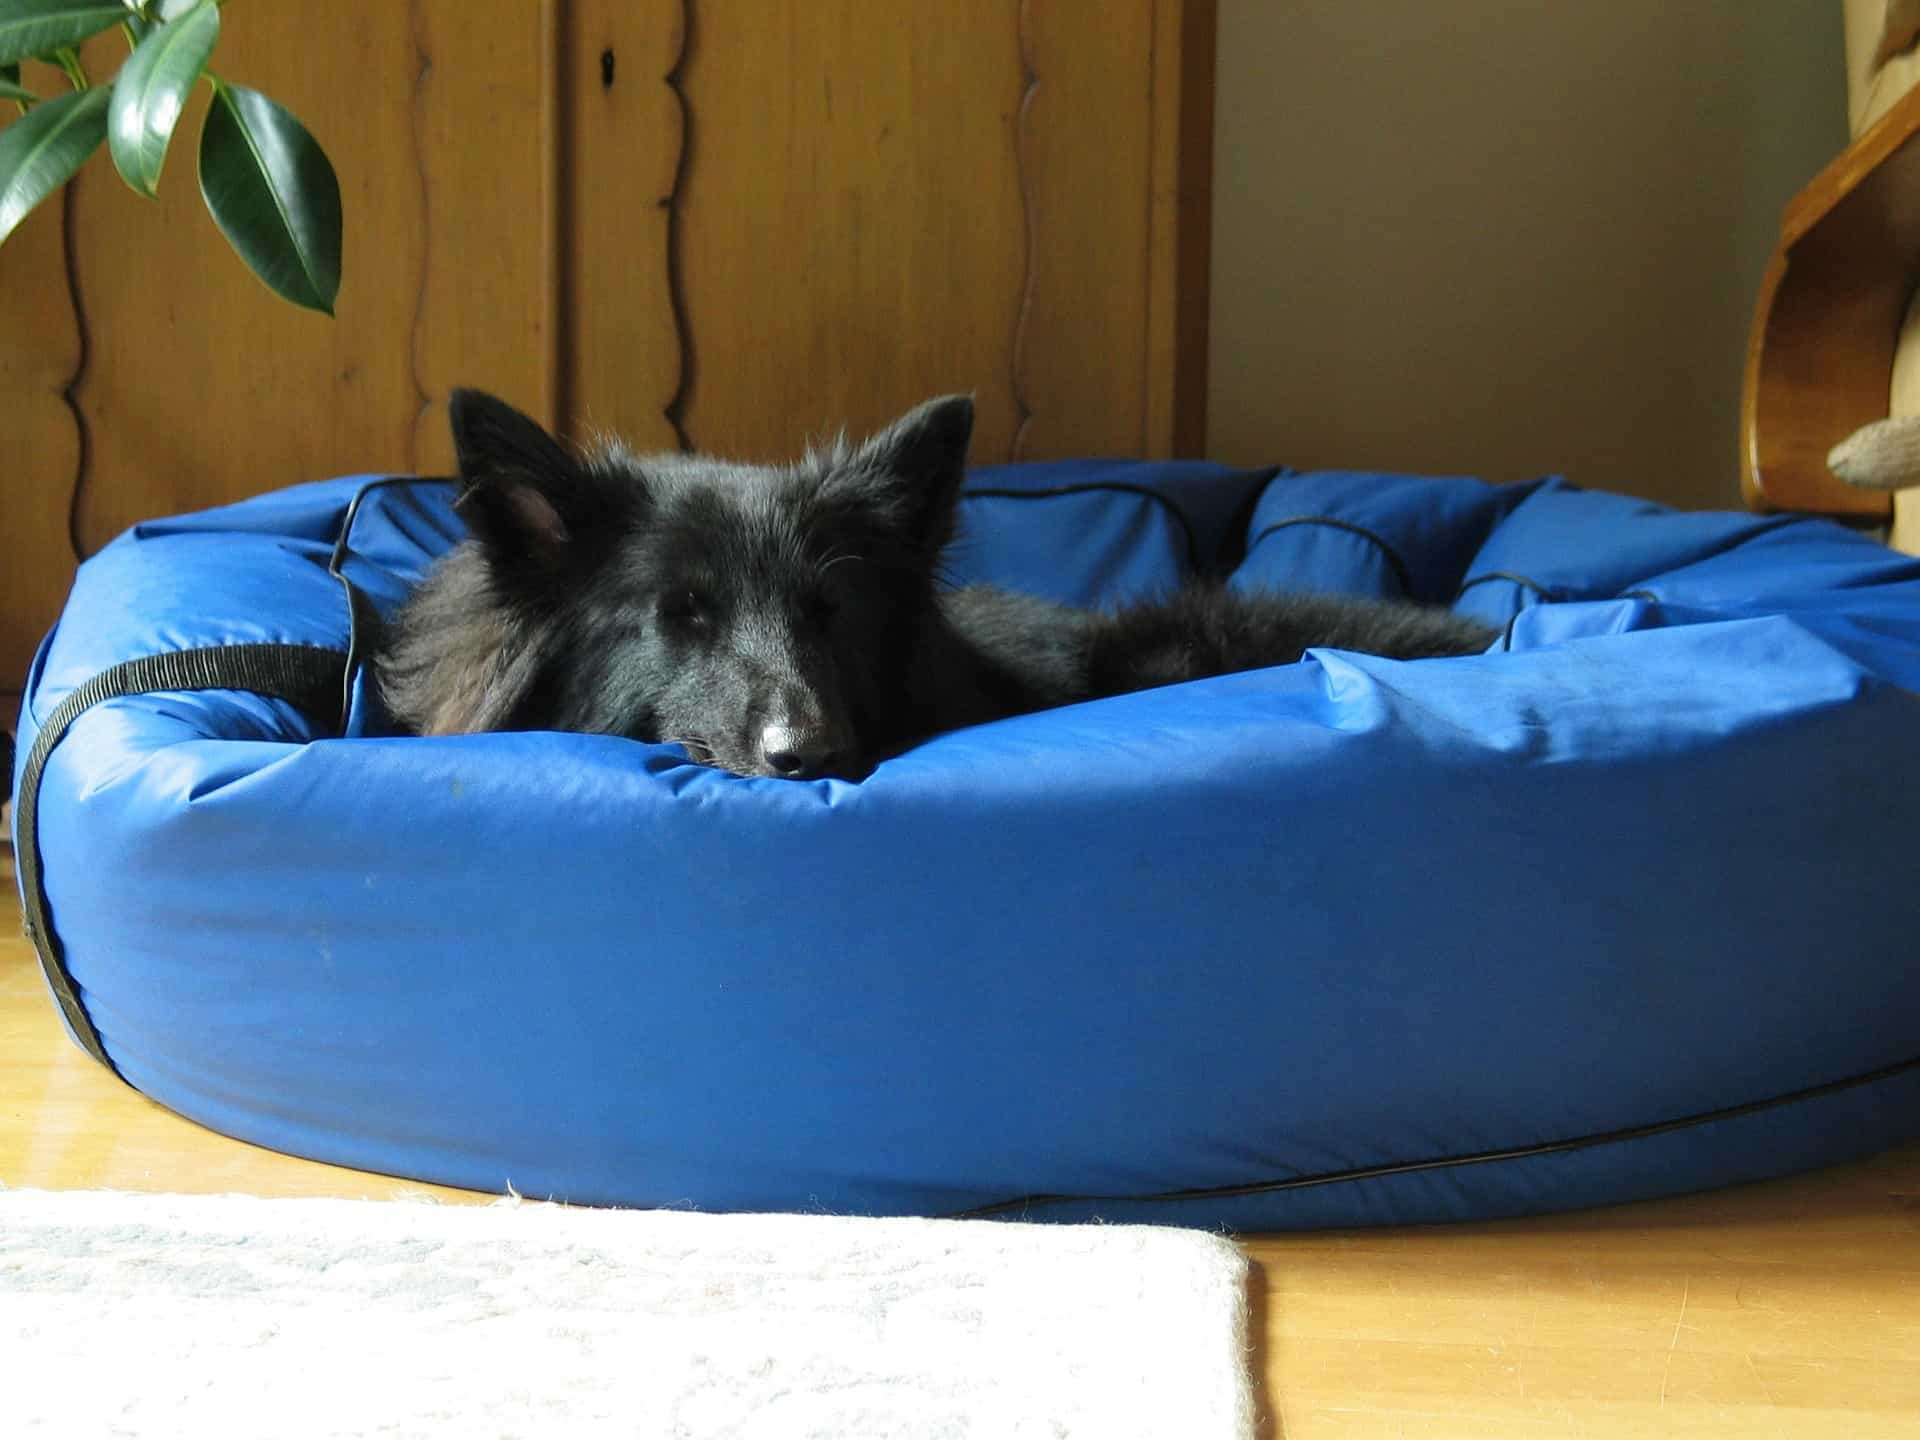 Large black dog sleeps in a blue padded pet bed.